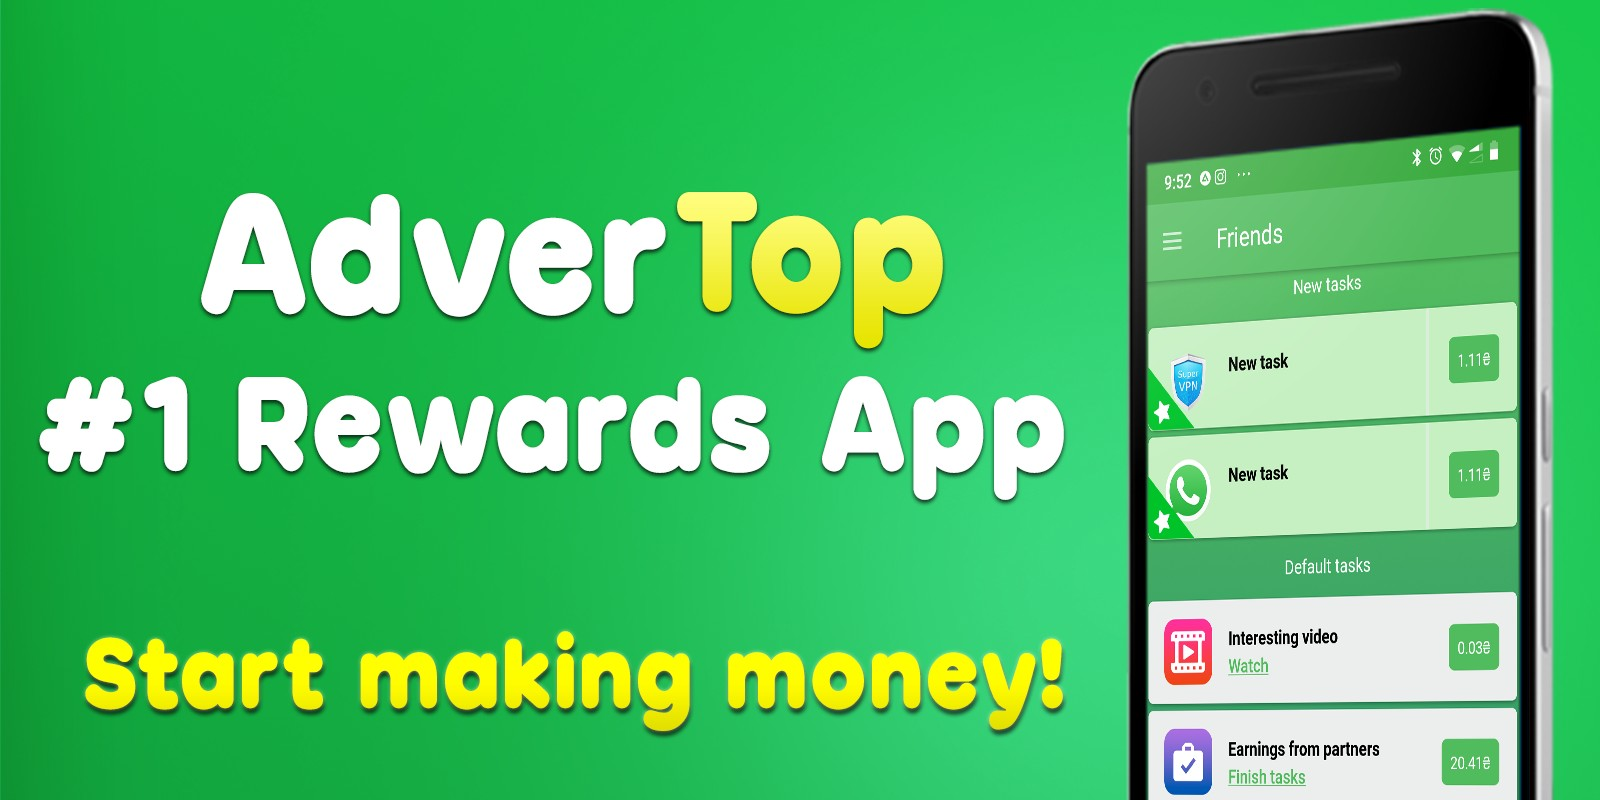 AdverTop - Rewards App Android Source Code